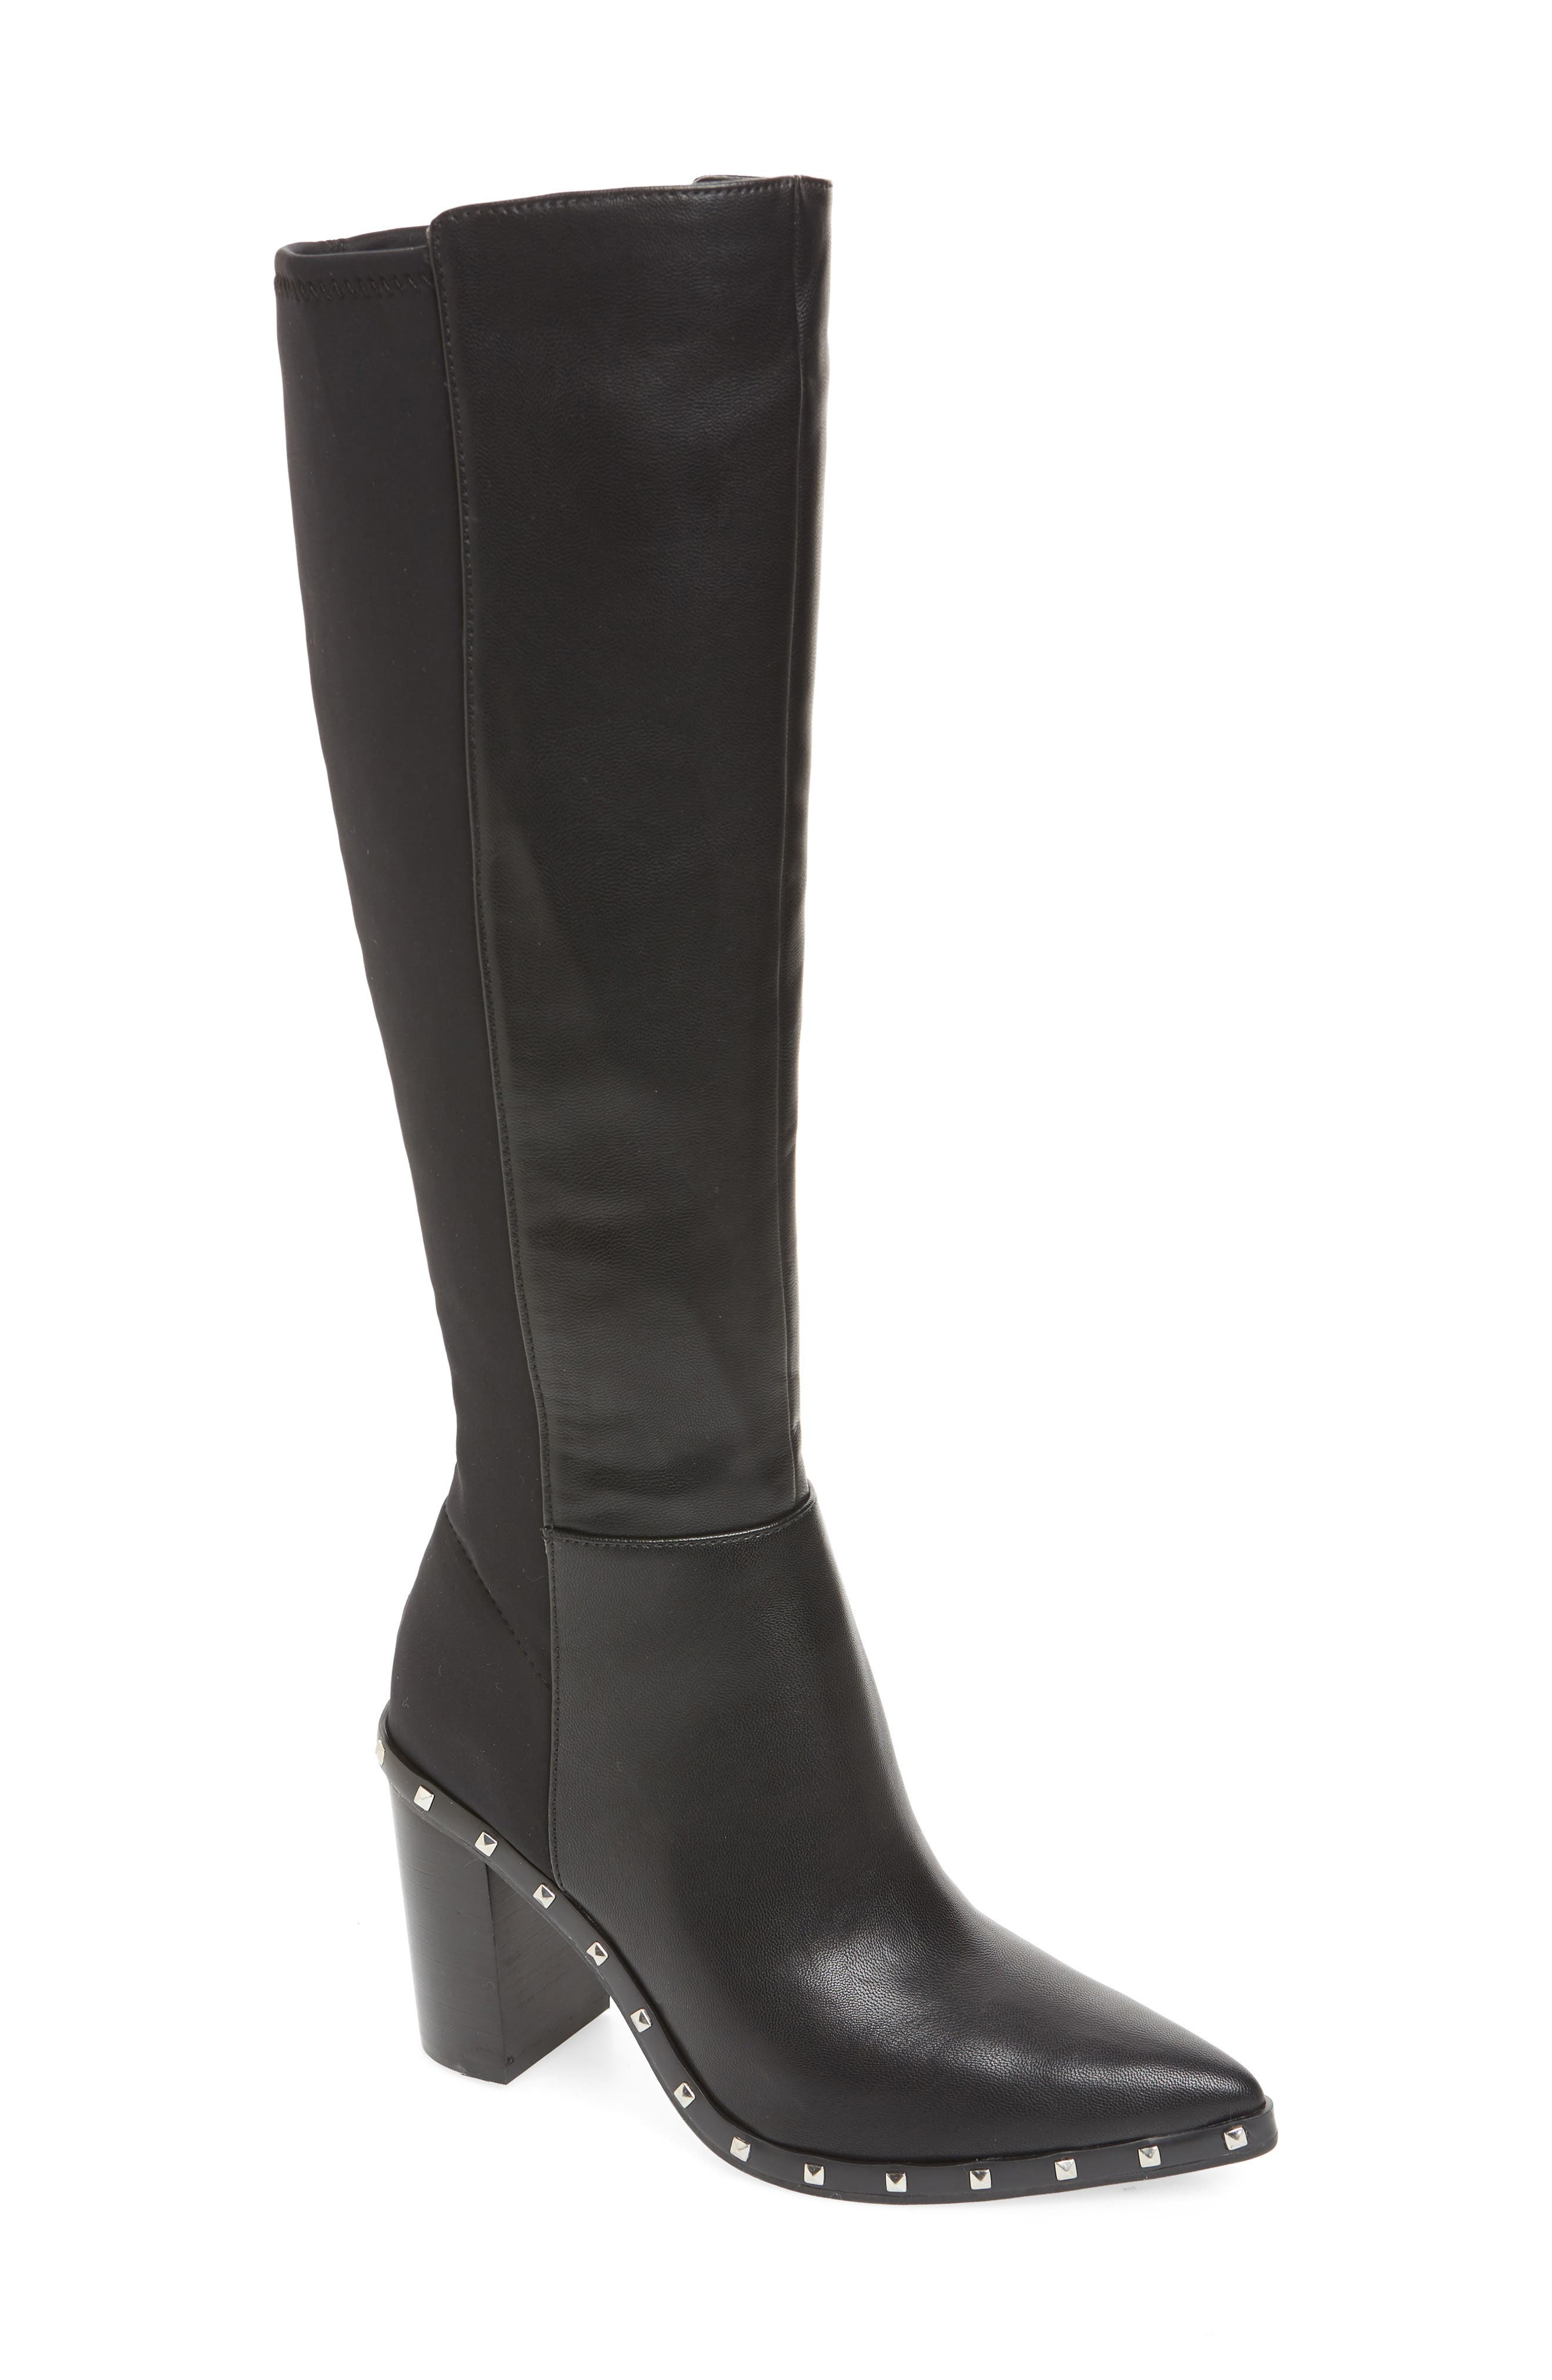 CHARLES BY CHARLES DAVID, Studded Knee High Stretch Boot, Main thumbnail 1, color, BLACK FAUX NUBUCK LEATHER